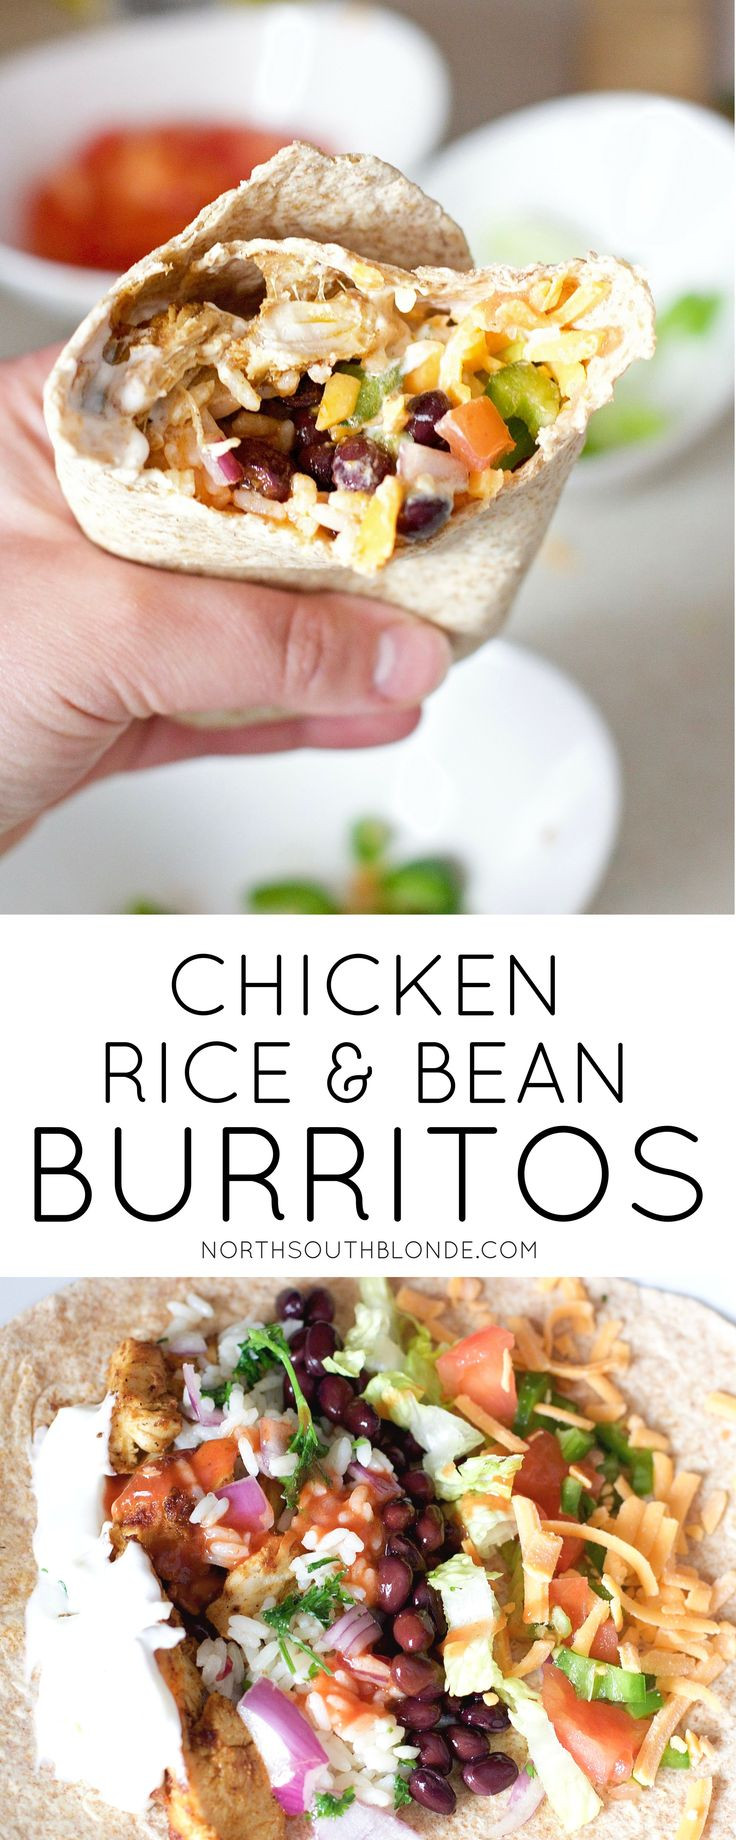 Easy Healthy Gluten Free Recipes  Best 25 Burrito recipes ideas only on Pinterest